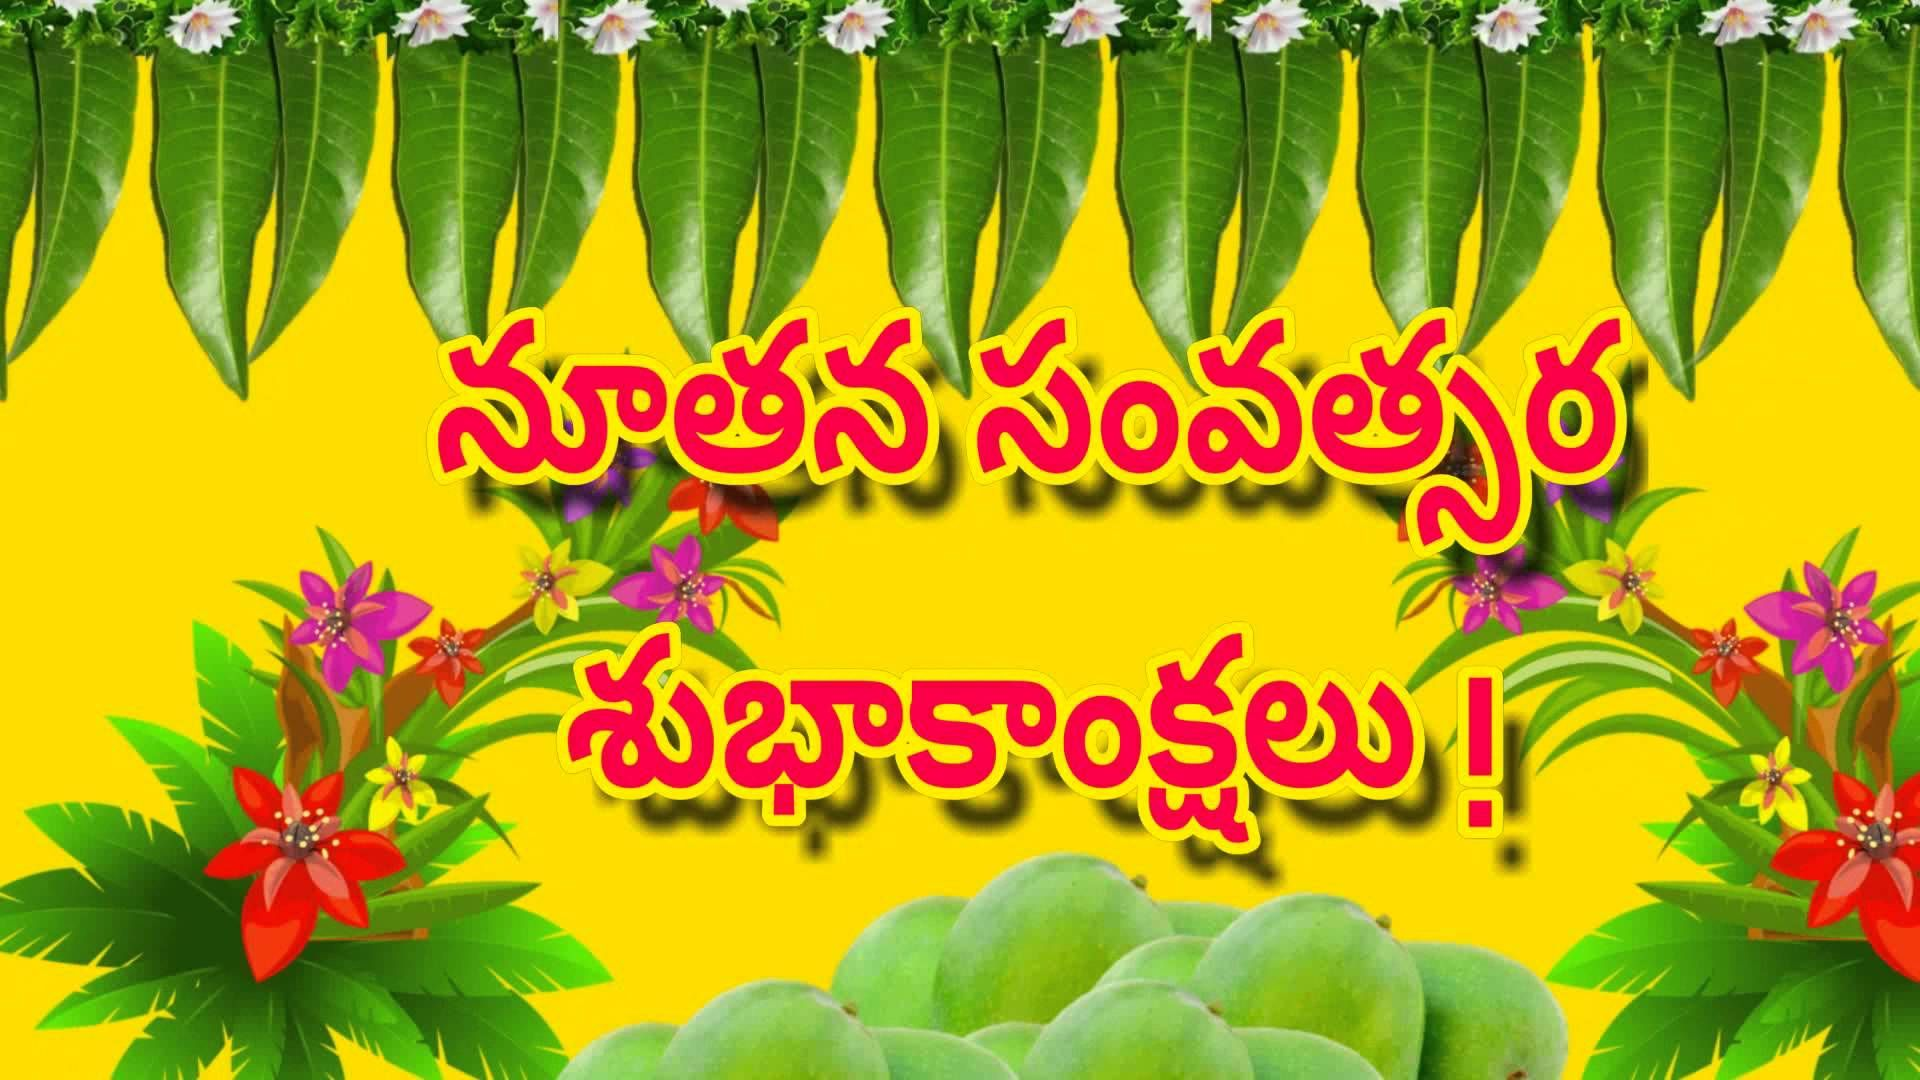 Happy ugadi greetings ugadi wishes ugadi 2016 ugadi whatsapp happy ugadi greetings ugadi wishes ugadi 2016 ugadi whatsapp telugu telugu whatsapp video greetings pinterest telugu kristyandbryce Images